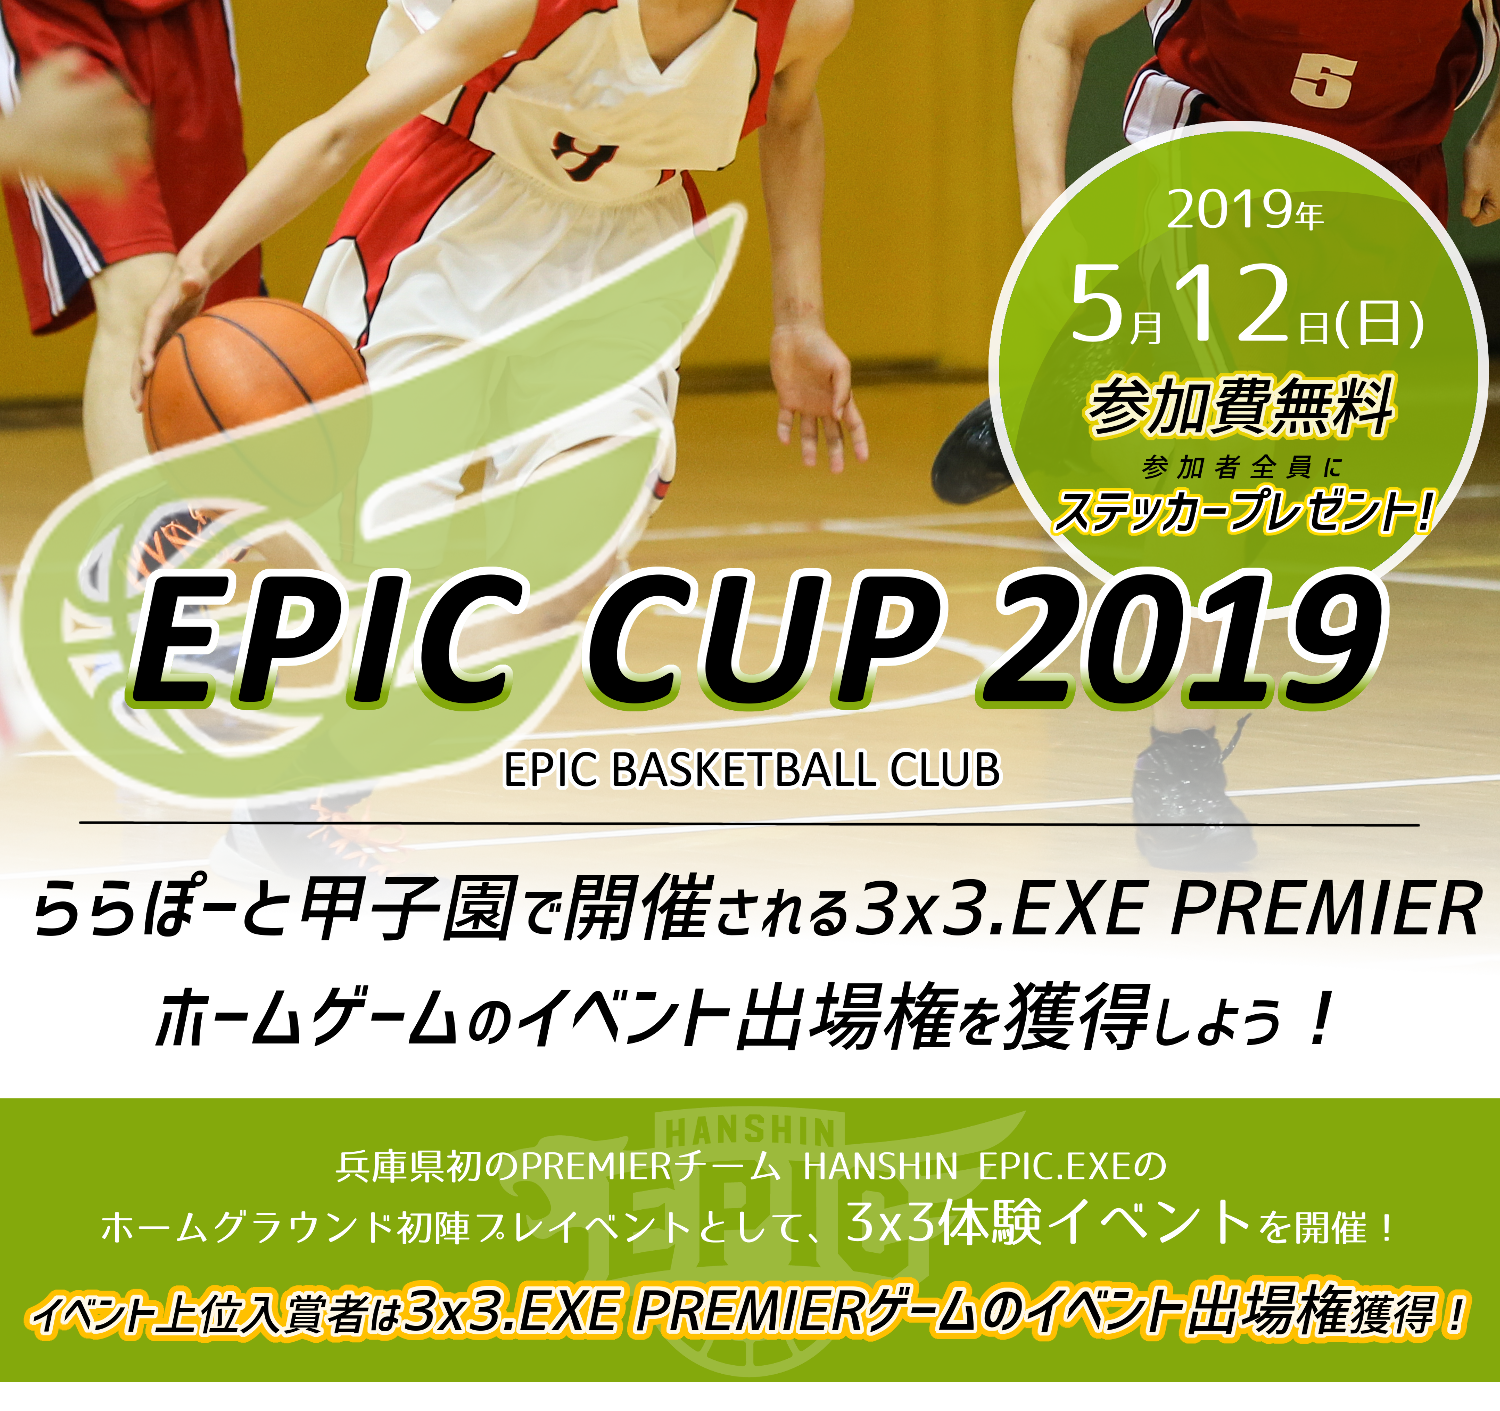 EPIC CUP 2019